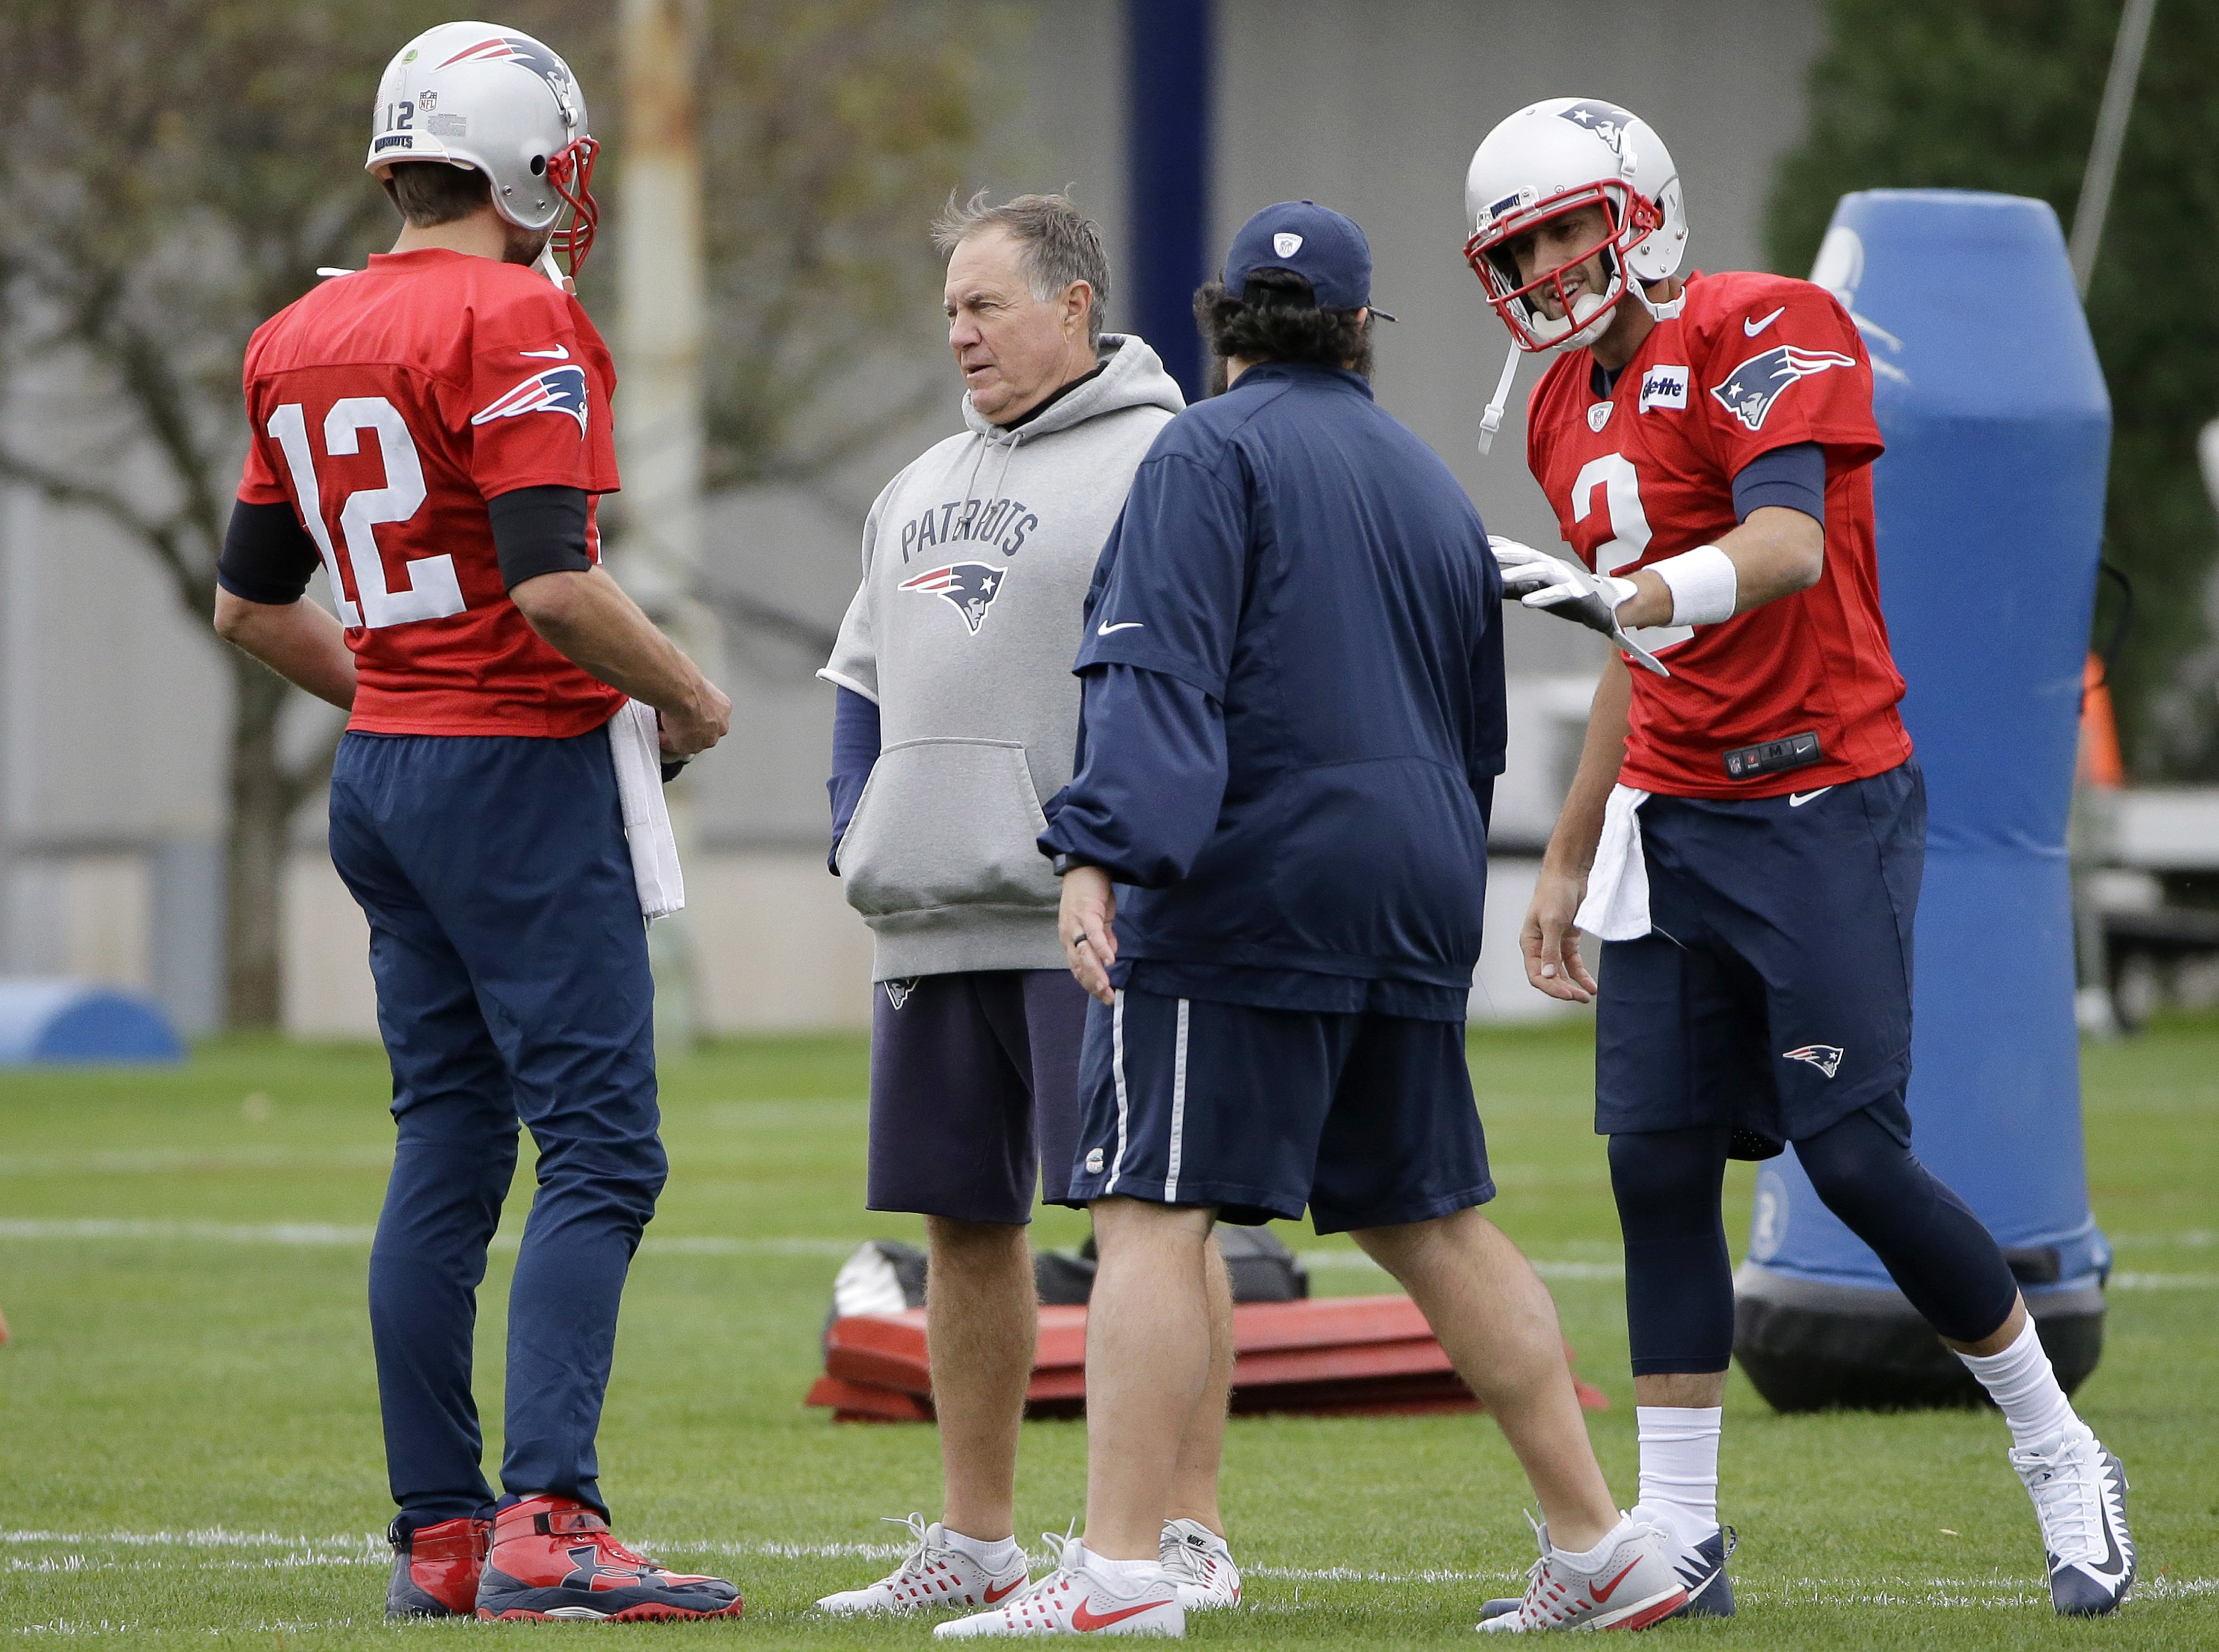 Air Force Academy to host New England Patriots football practice ...